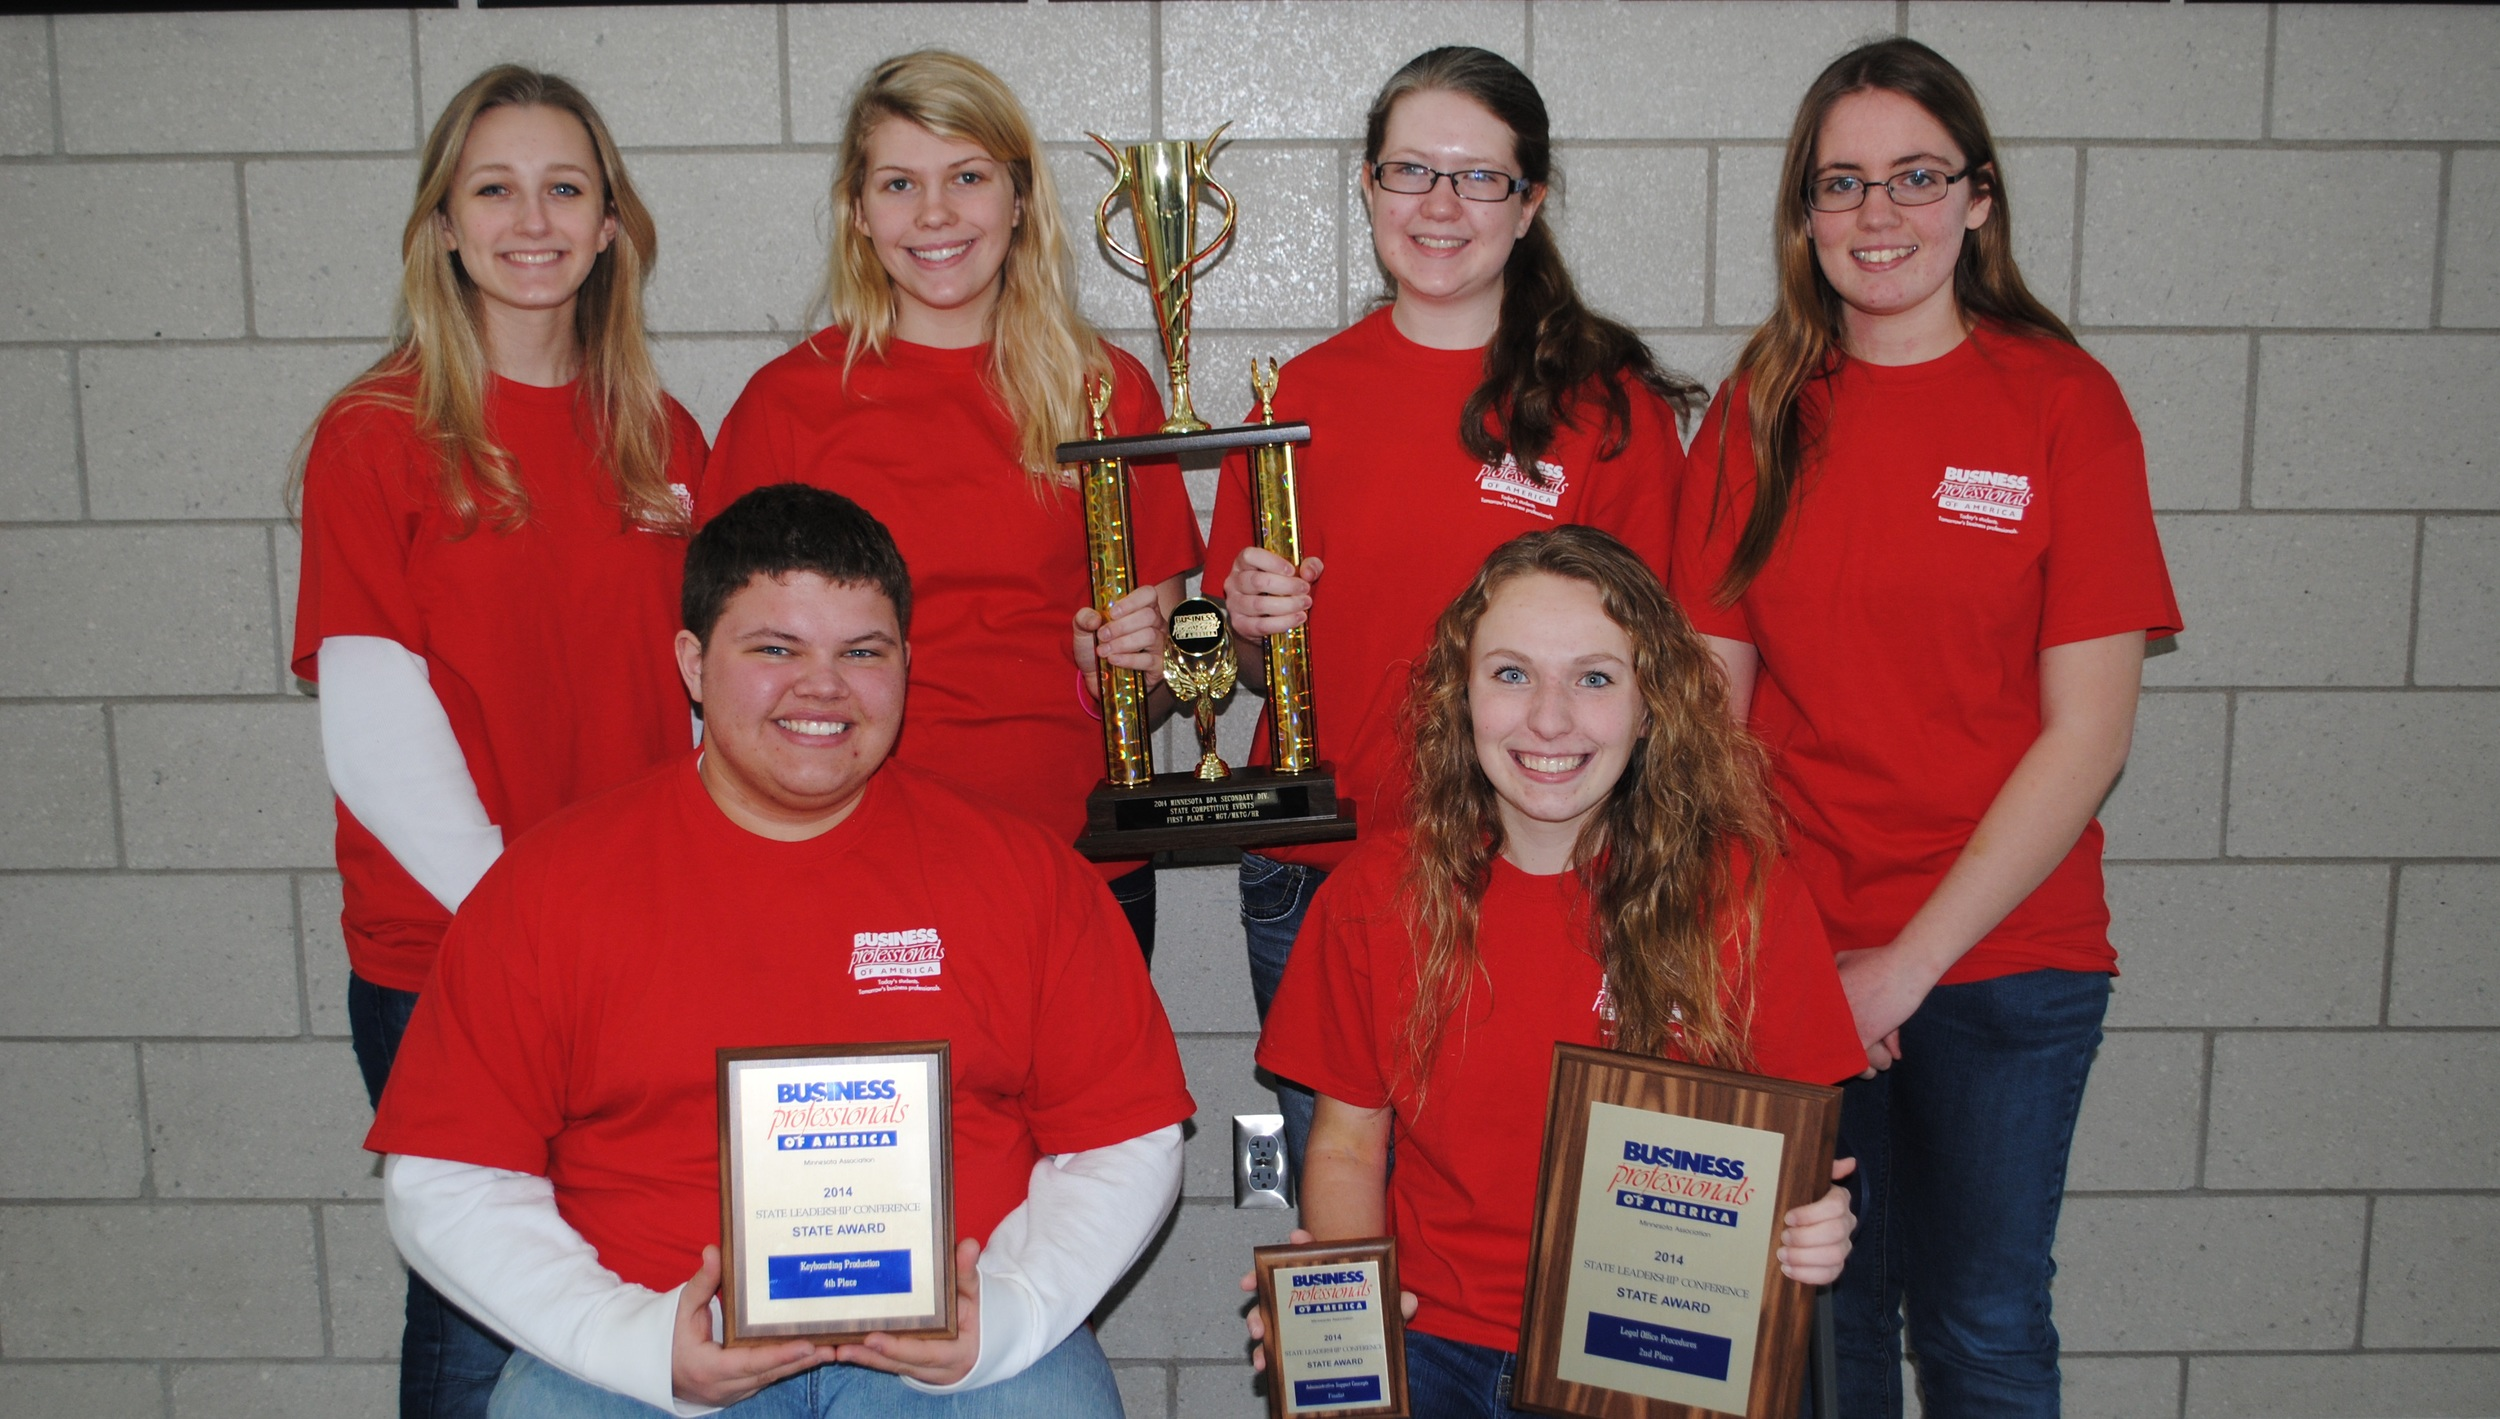 Wadena-Deer Creek BPA members who participated in the State Leadership Conference this past weekend were, front, from left: Austin Hendershot and Paige Hartman, who both qualified for the national conference; back row, from left: Marissa Jahnke, Brandee Bly, Elise Kallevig and Ashley Peters. Not pictured: Anna Kraemer. (Photo by Dana Pavek, WDC Schools)